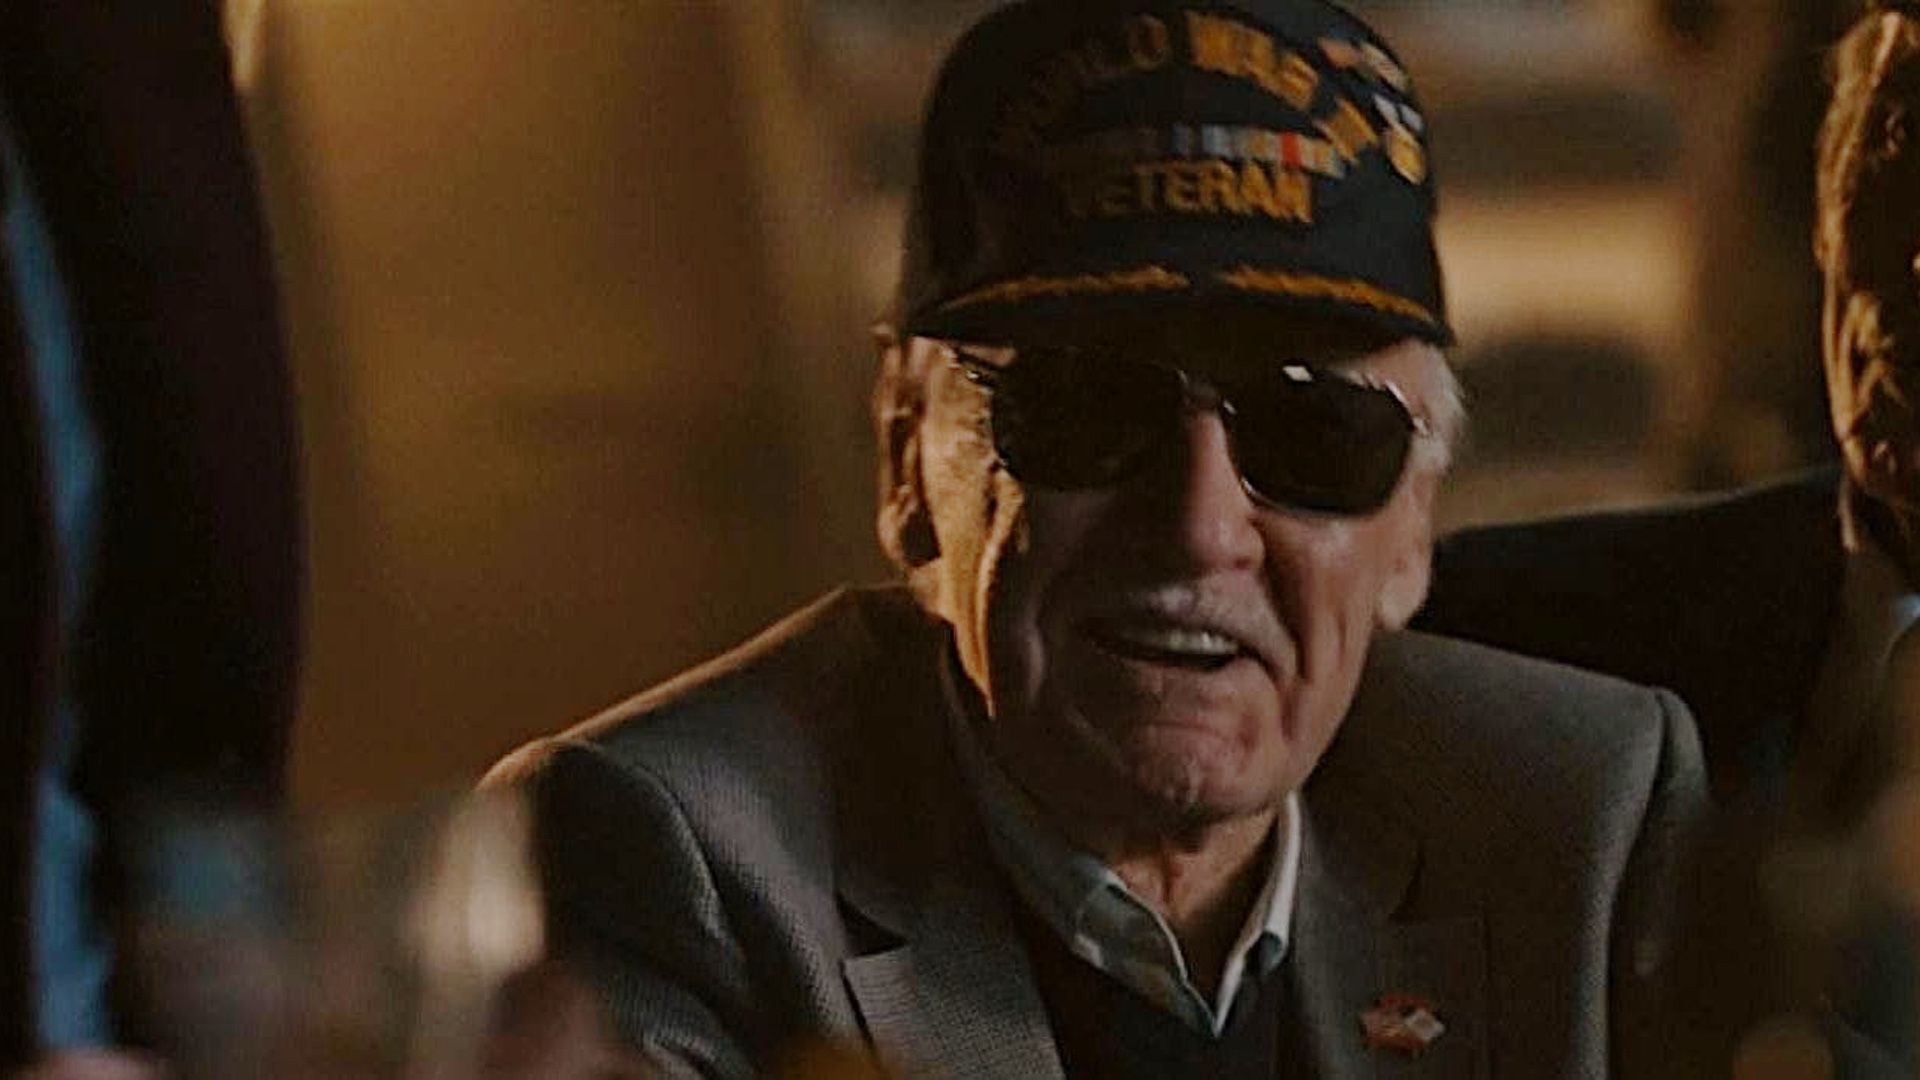 avengers-endgame-fan-theory-suggests-stan-lee-was-supposed-to-be-old-steve-rogers-all-along-social.jpg